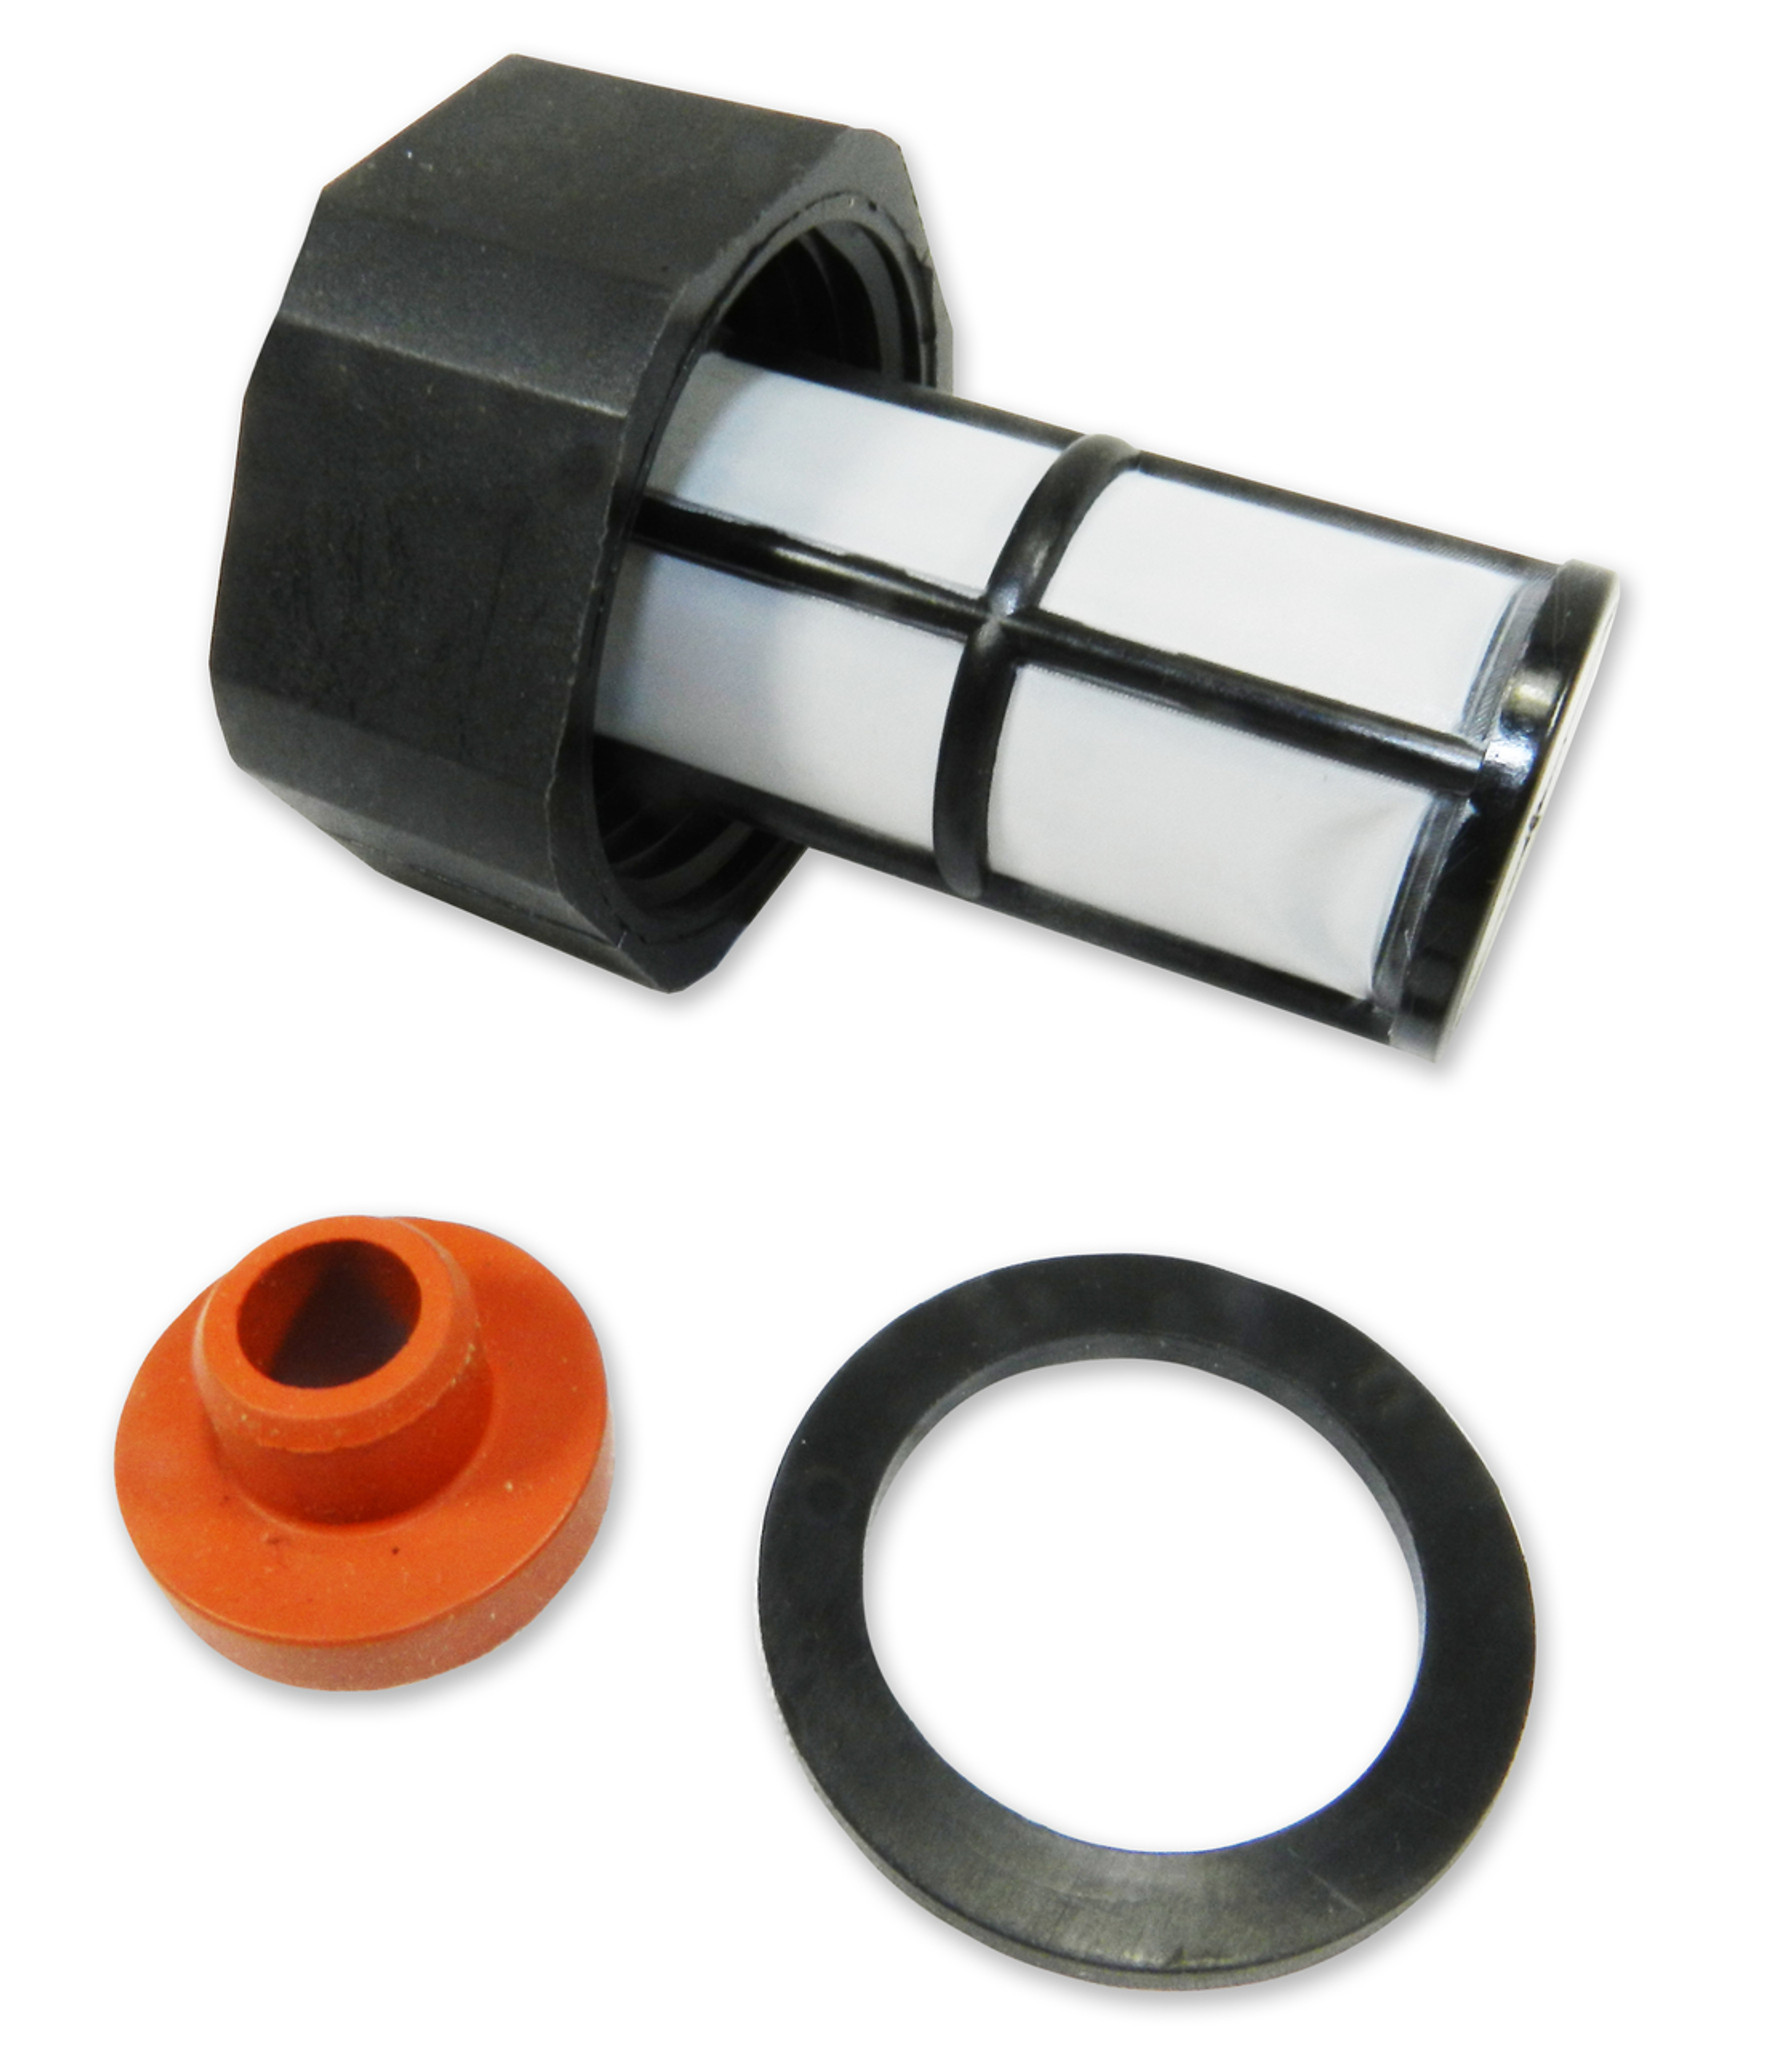 Fuel Filter with Bushing | Wacker S50-2, BS50-2i, BS50-4, BS500, BS52Y,  BS60-2i, ...